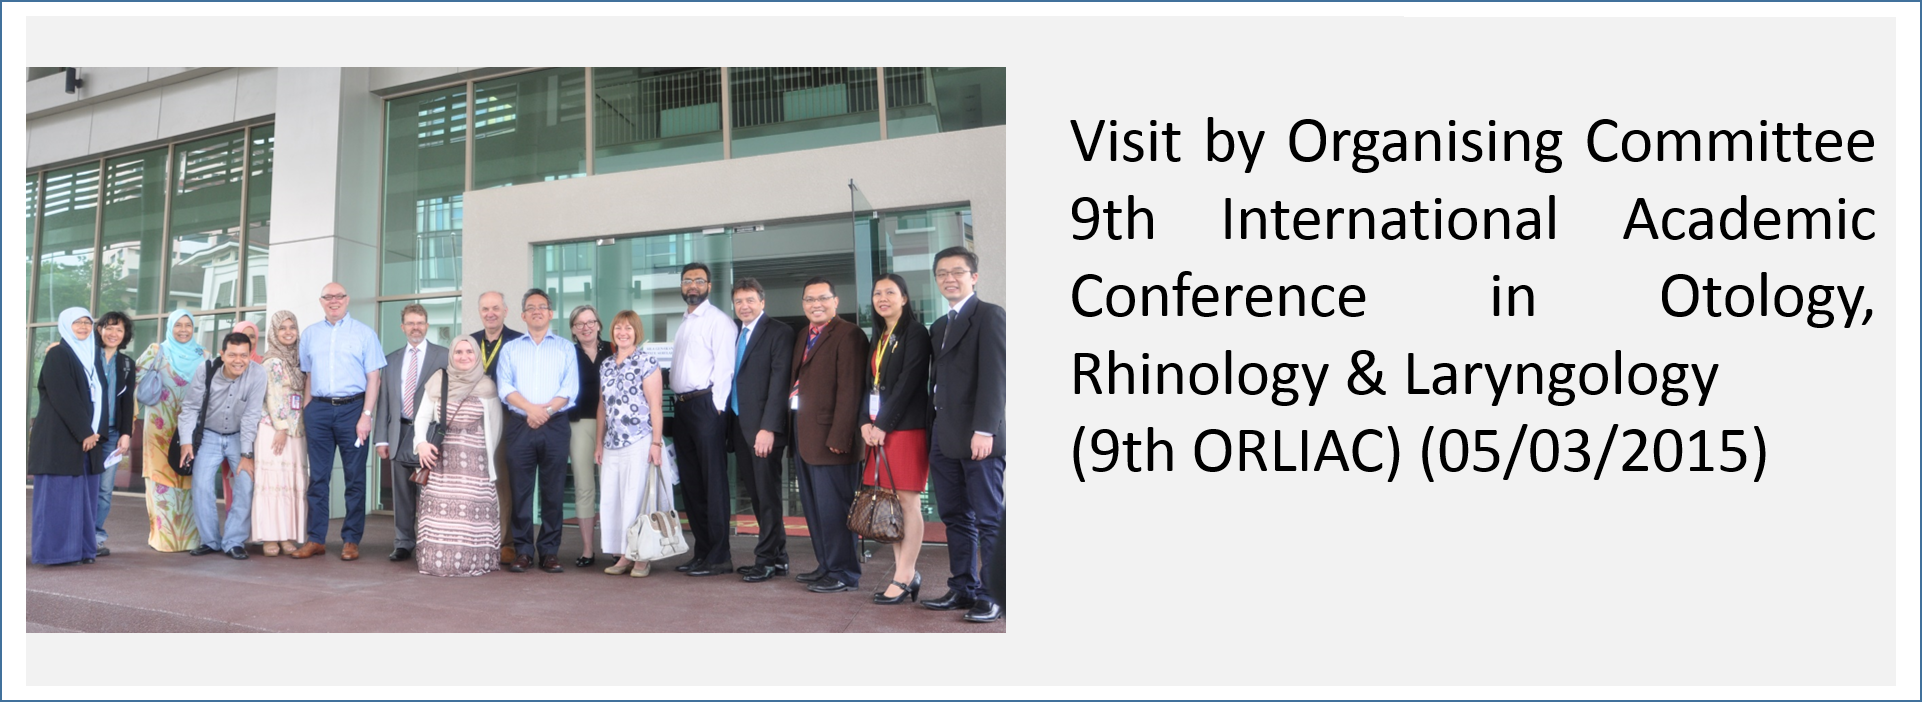 Visit by Organising Committee 9th International Academic Conference in Otology, Rhinology & Laryngology